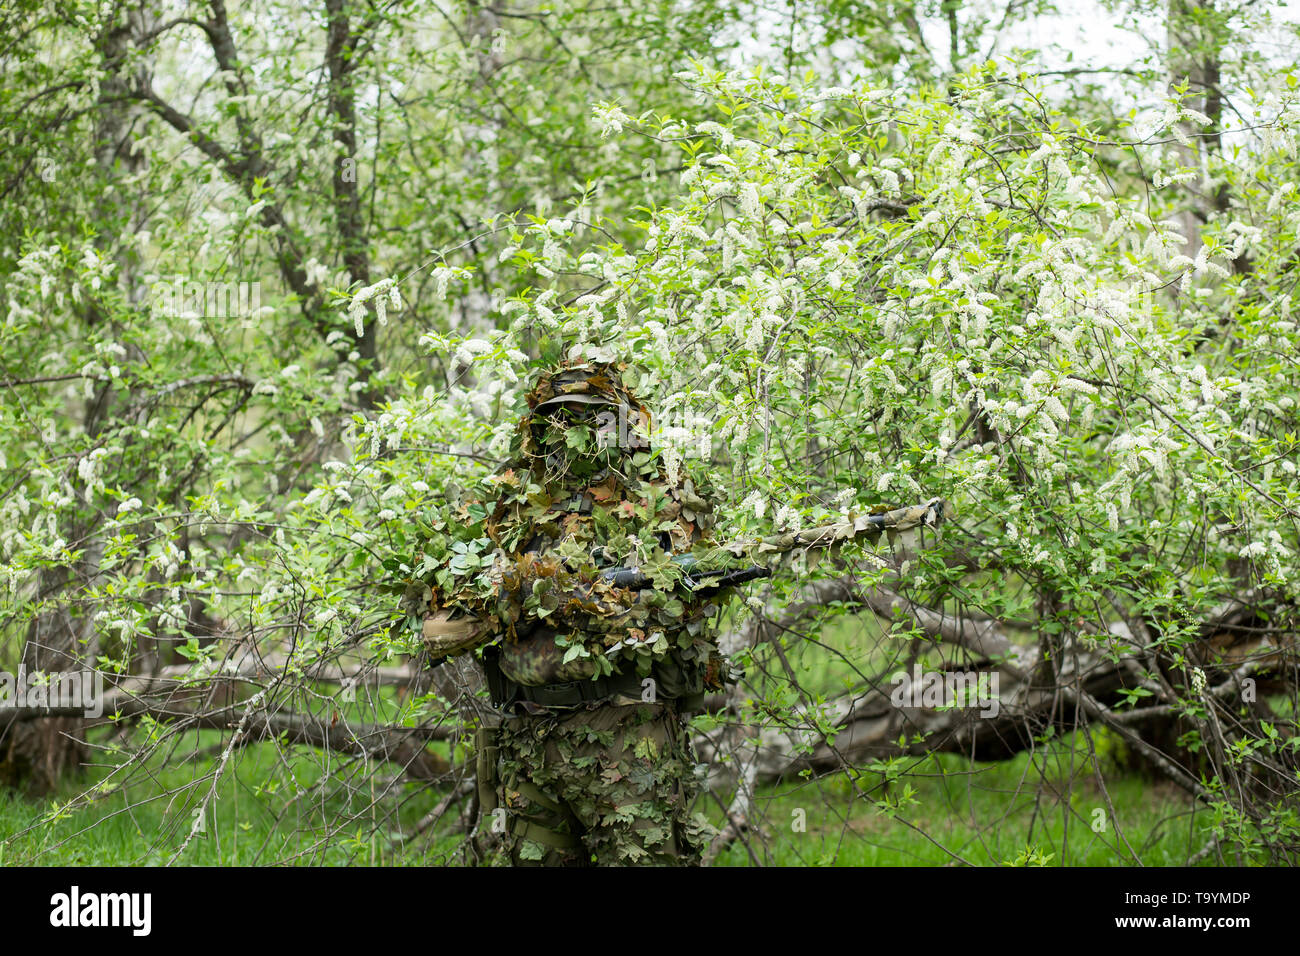 Male sniper posing in green camouflage camouflage clothing with a gun, a rifle on hand in the forest near the cherry blossoms. Army, military, airsoft - Stock Image